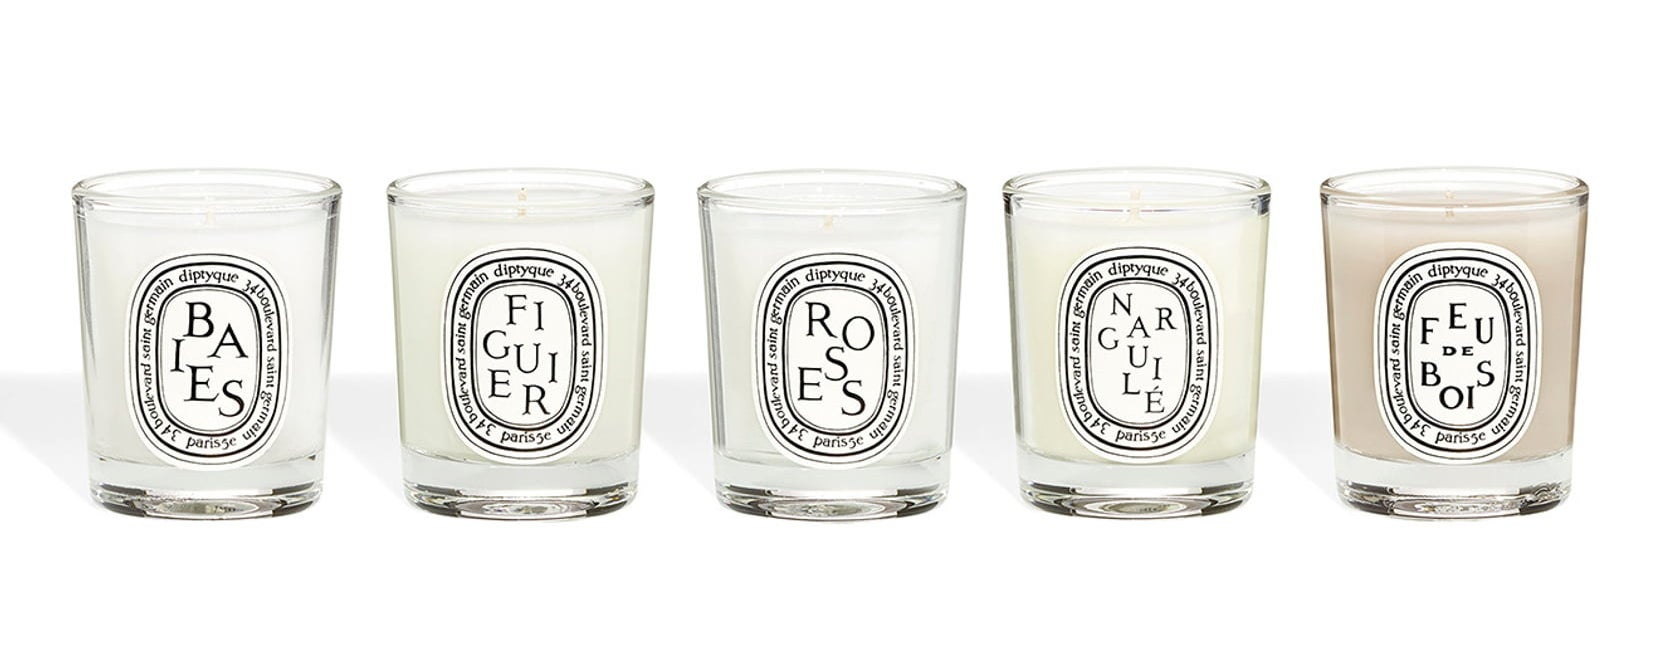 The set of five travel-sized limited edition Diptyque Scented Candles.